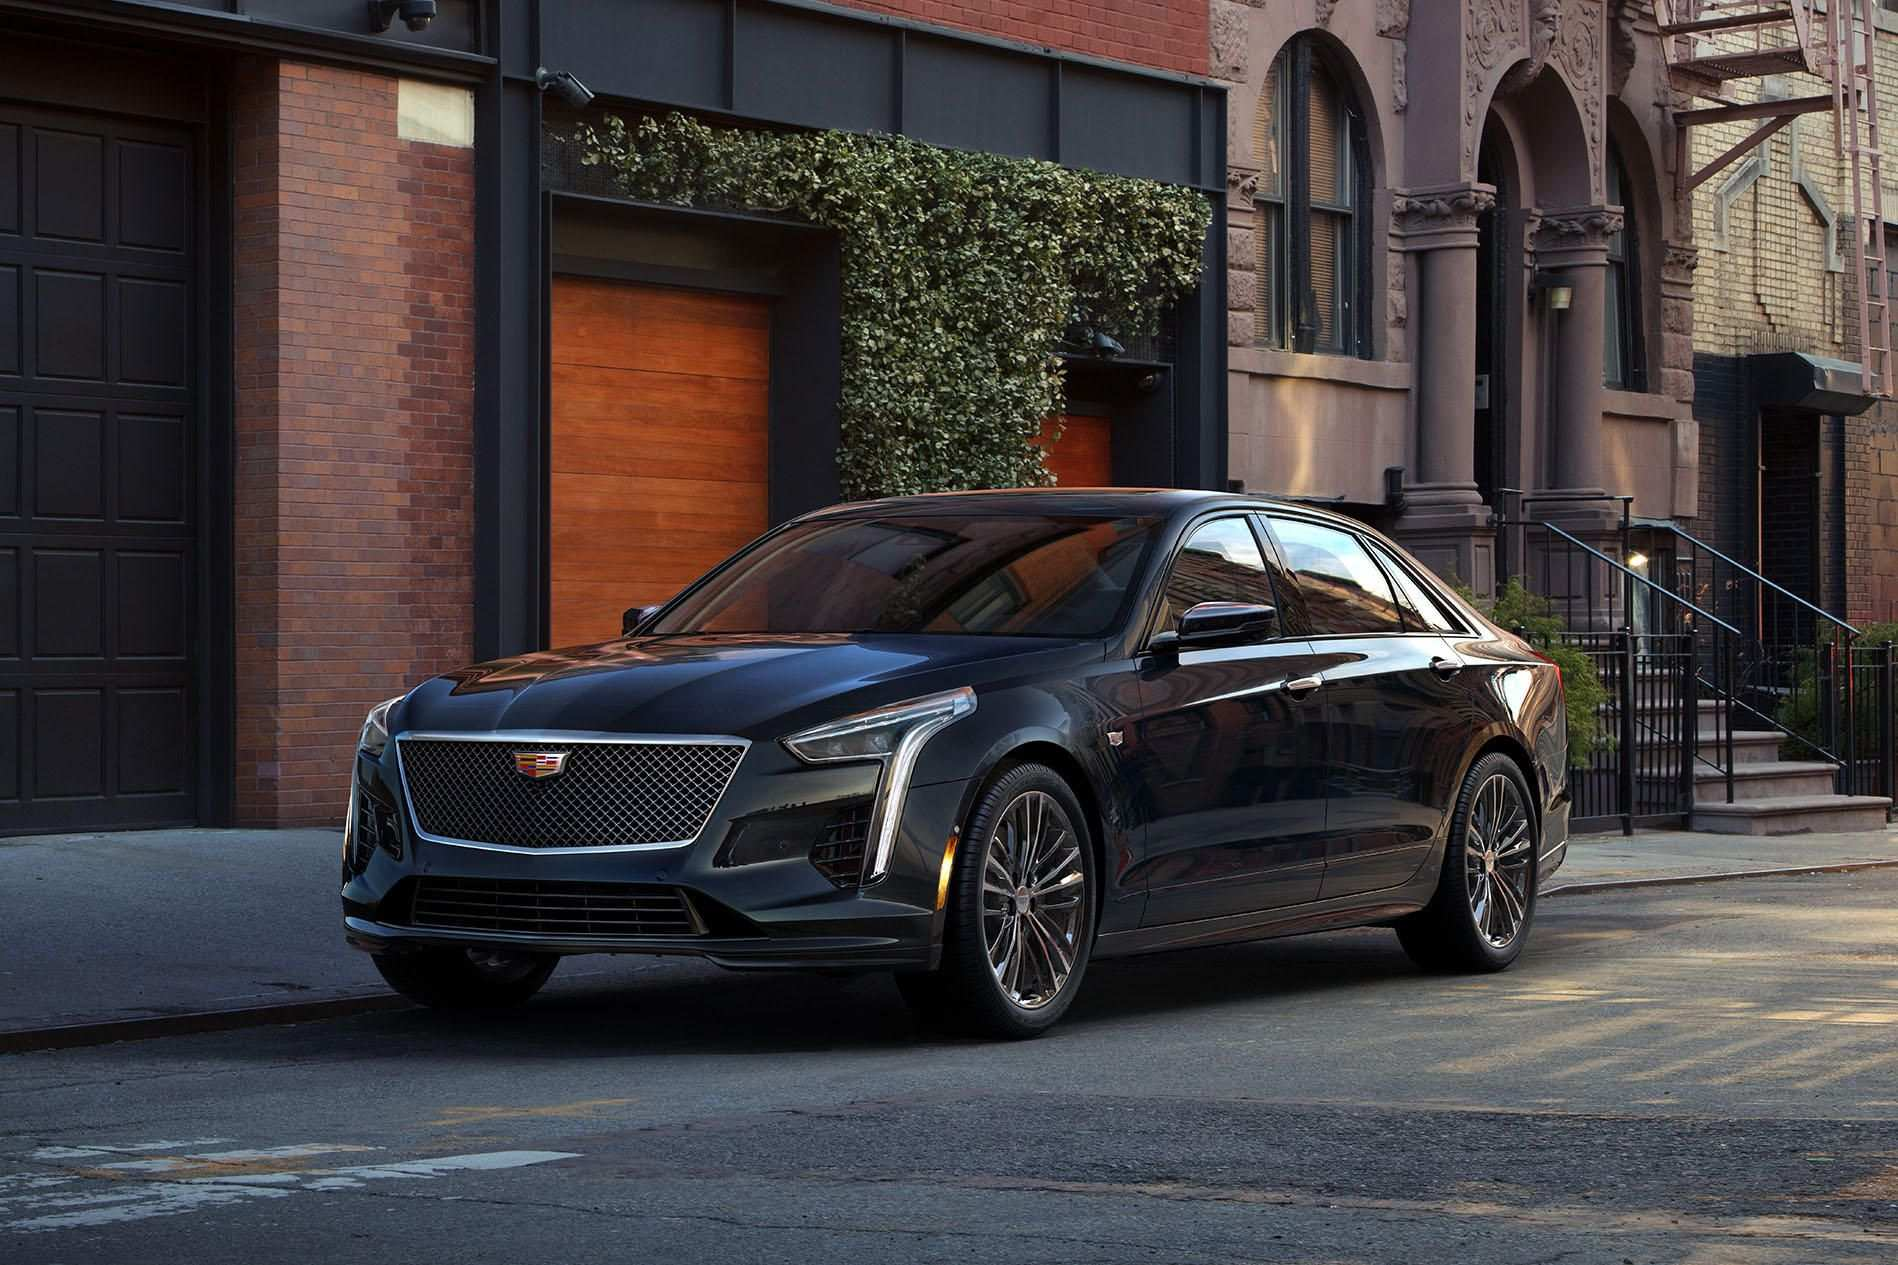 98 All New Cadillac 2019 Launches Engine Model